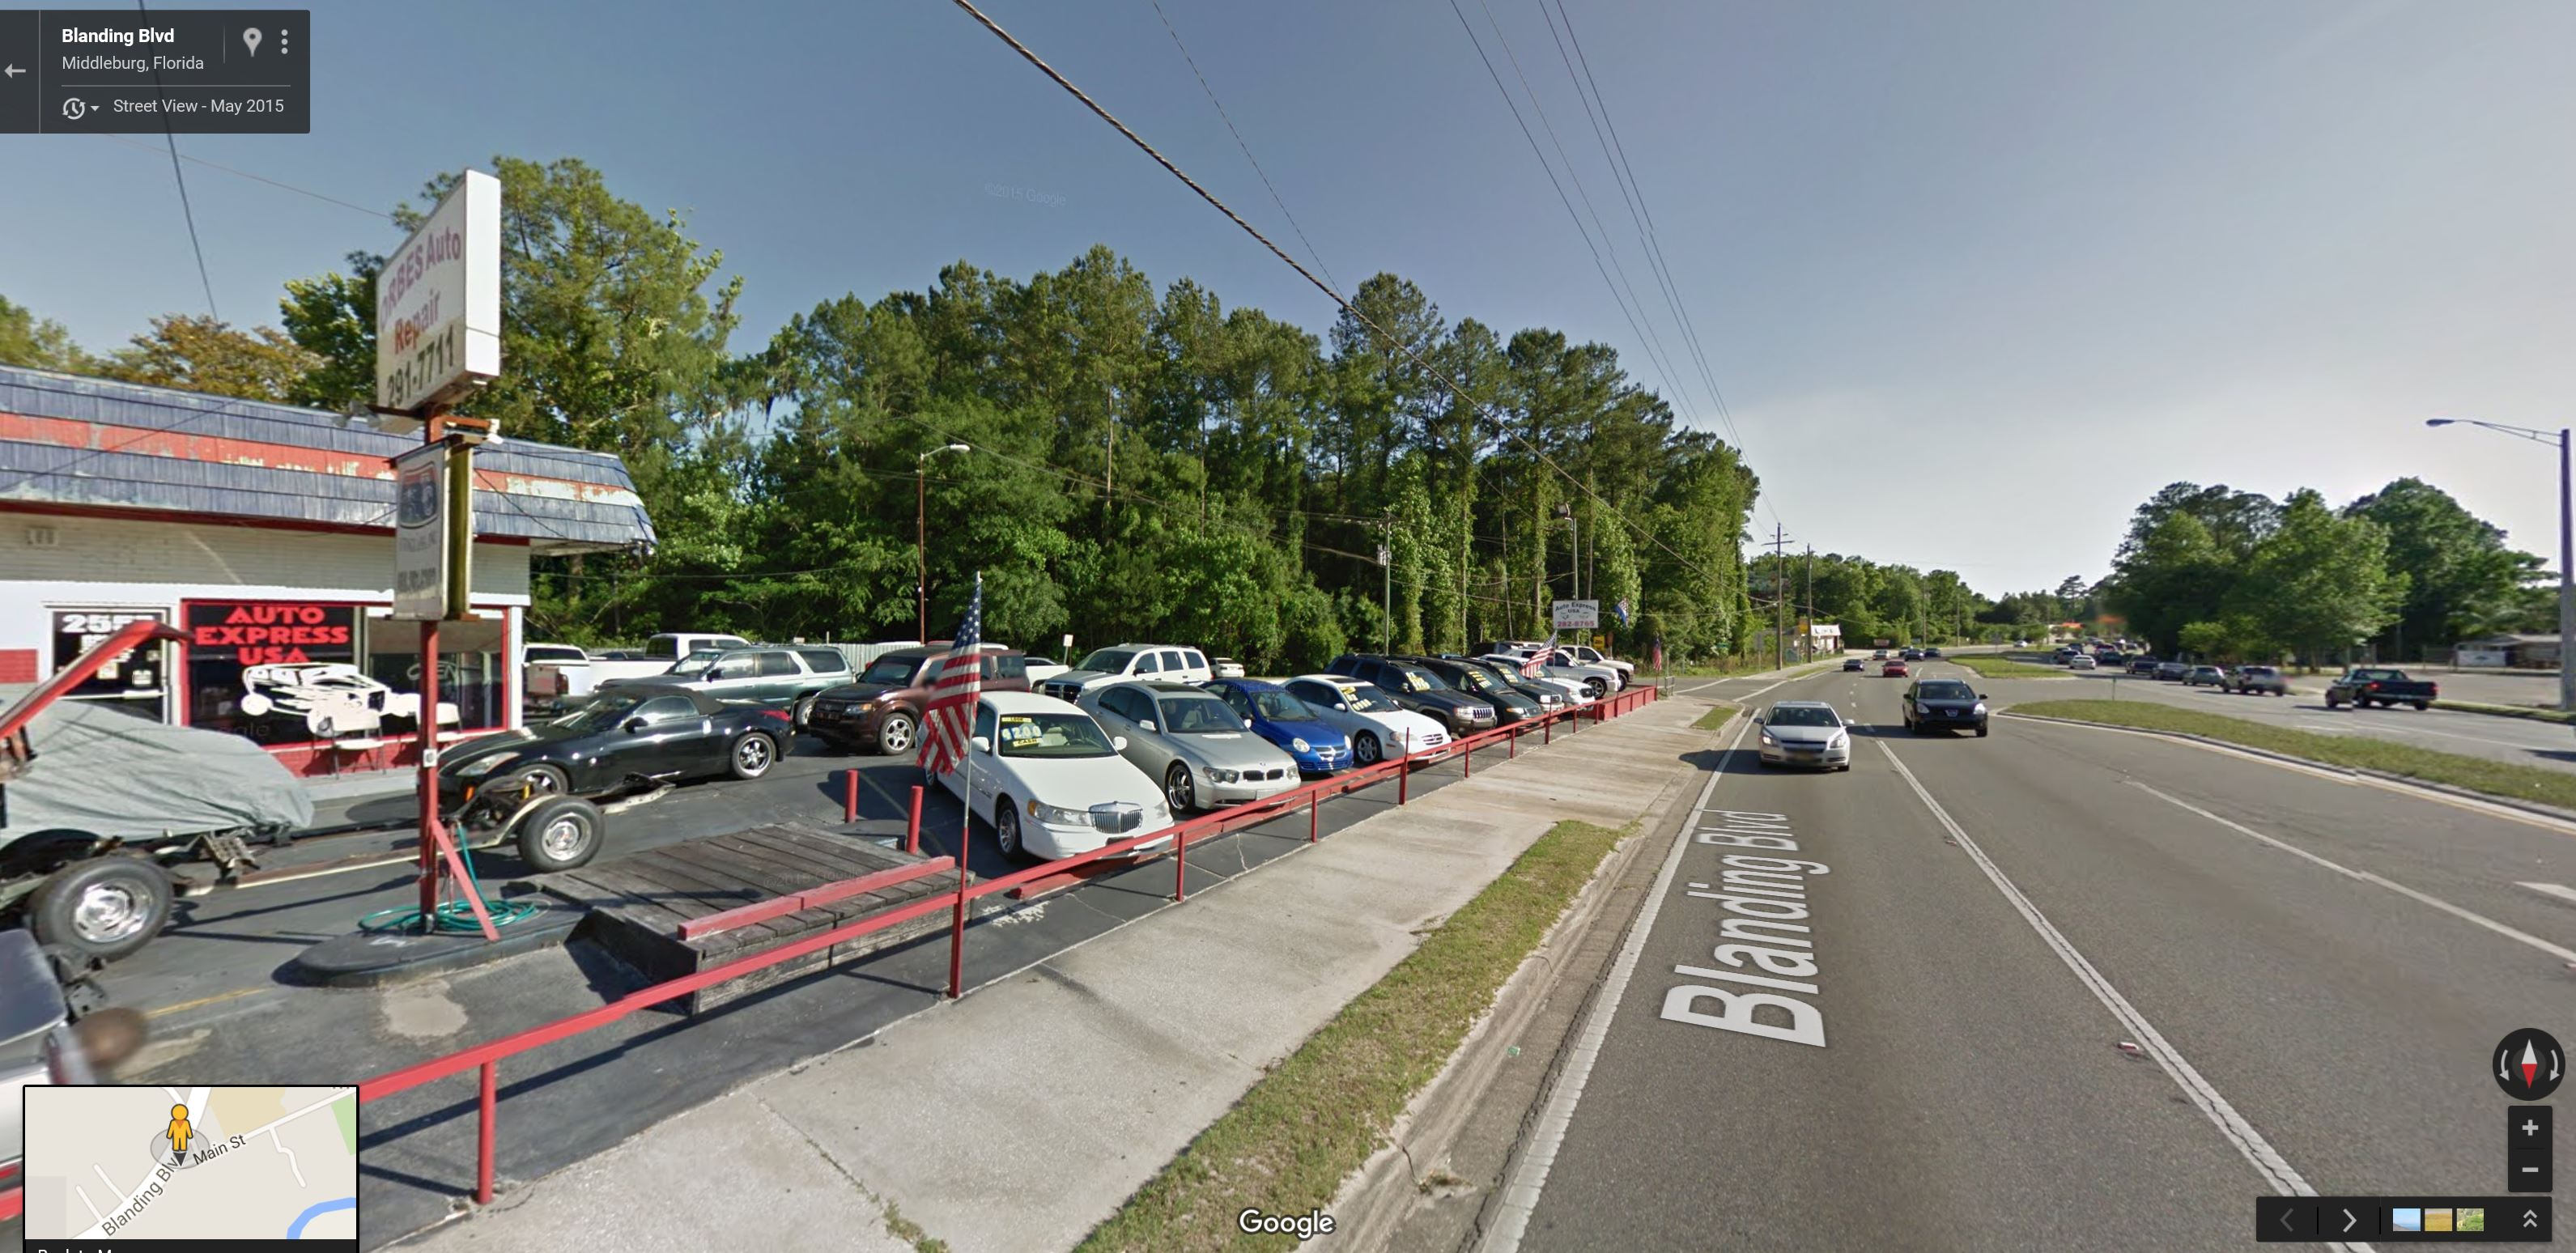 FDOT Road Widening: Auto Repair and Used Car Sales Lot (Clay County, FL)